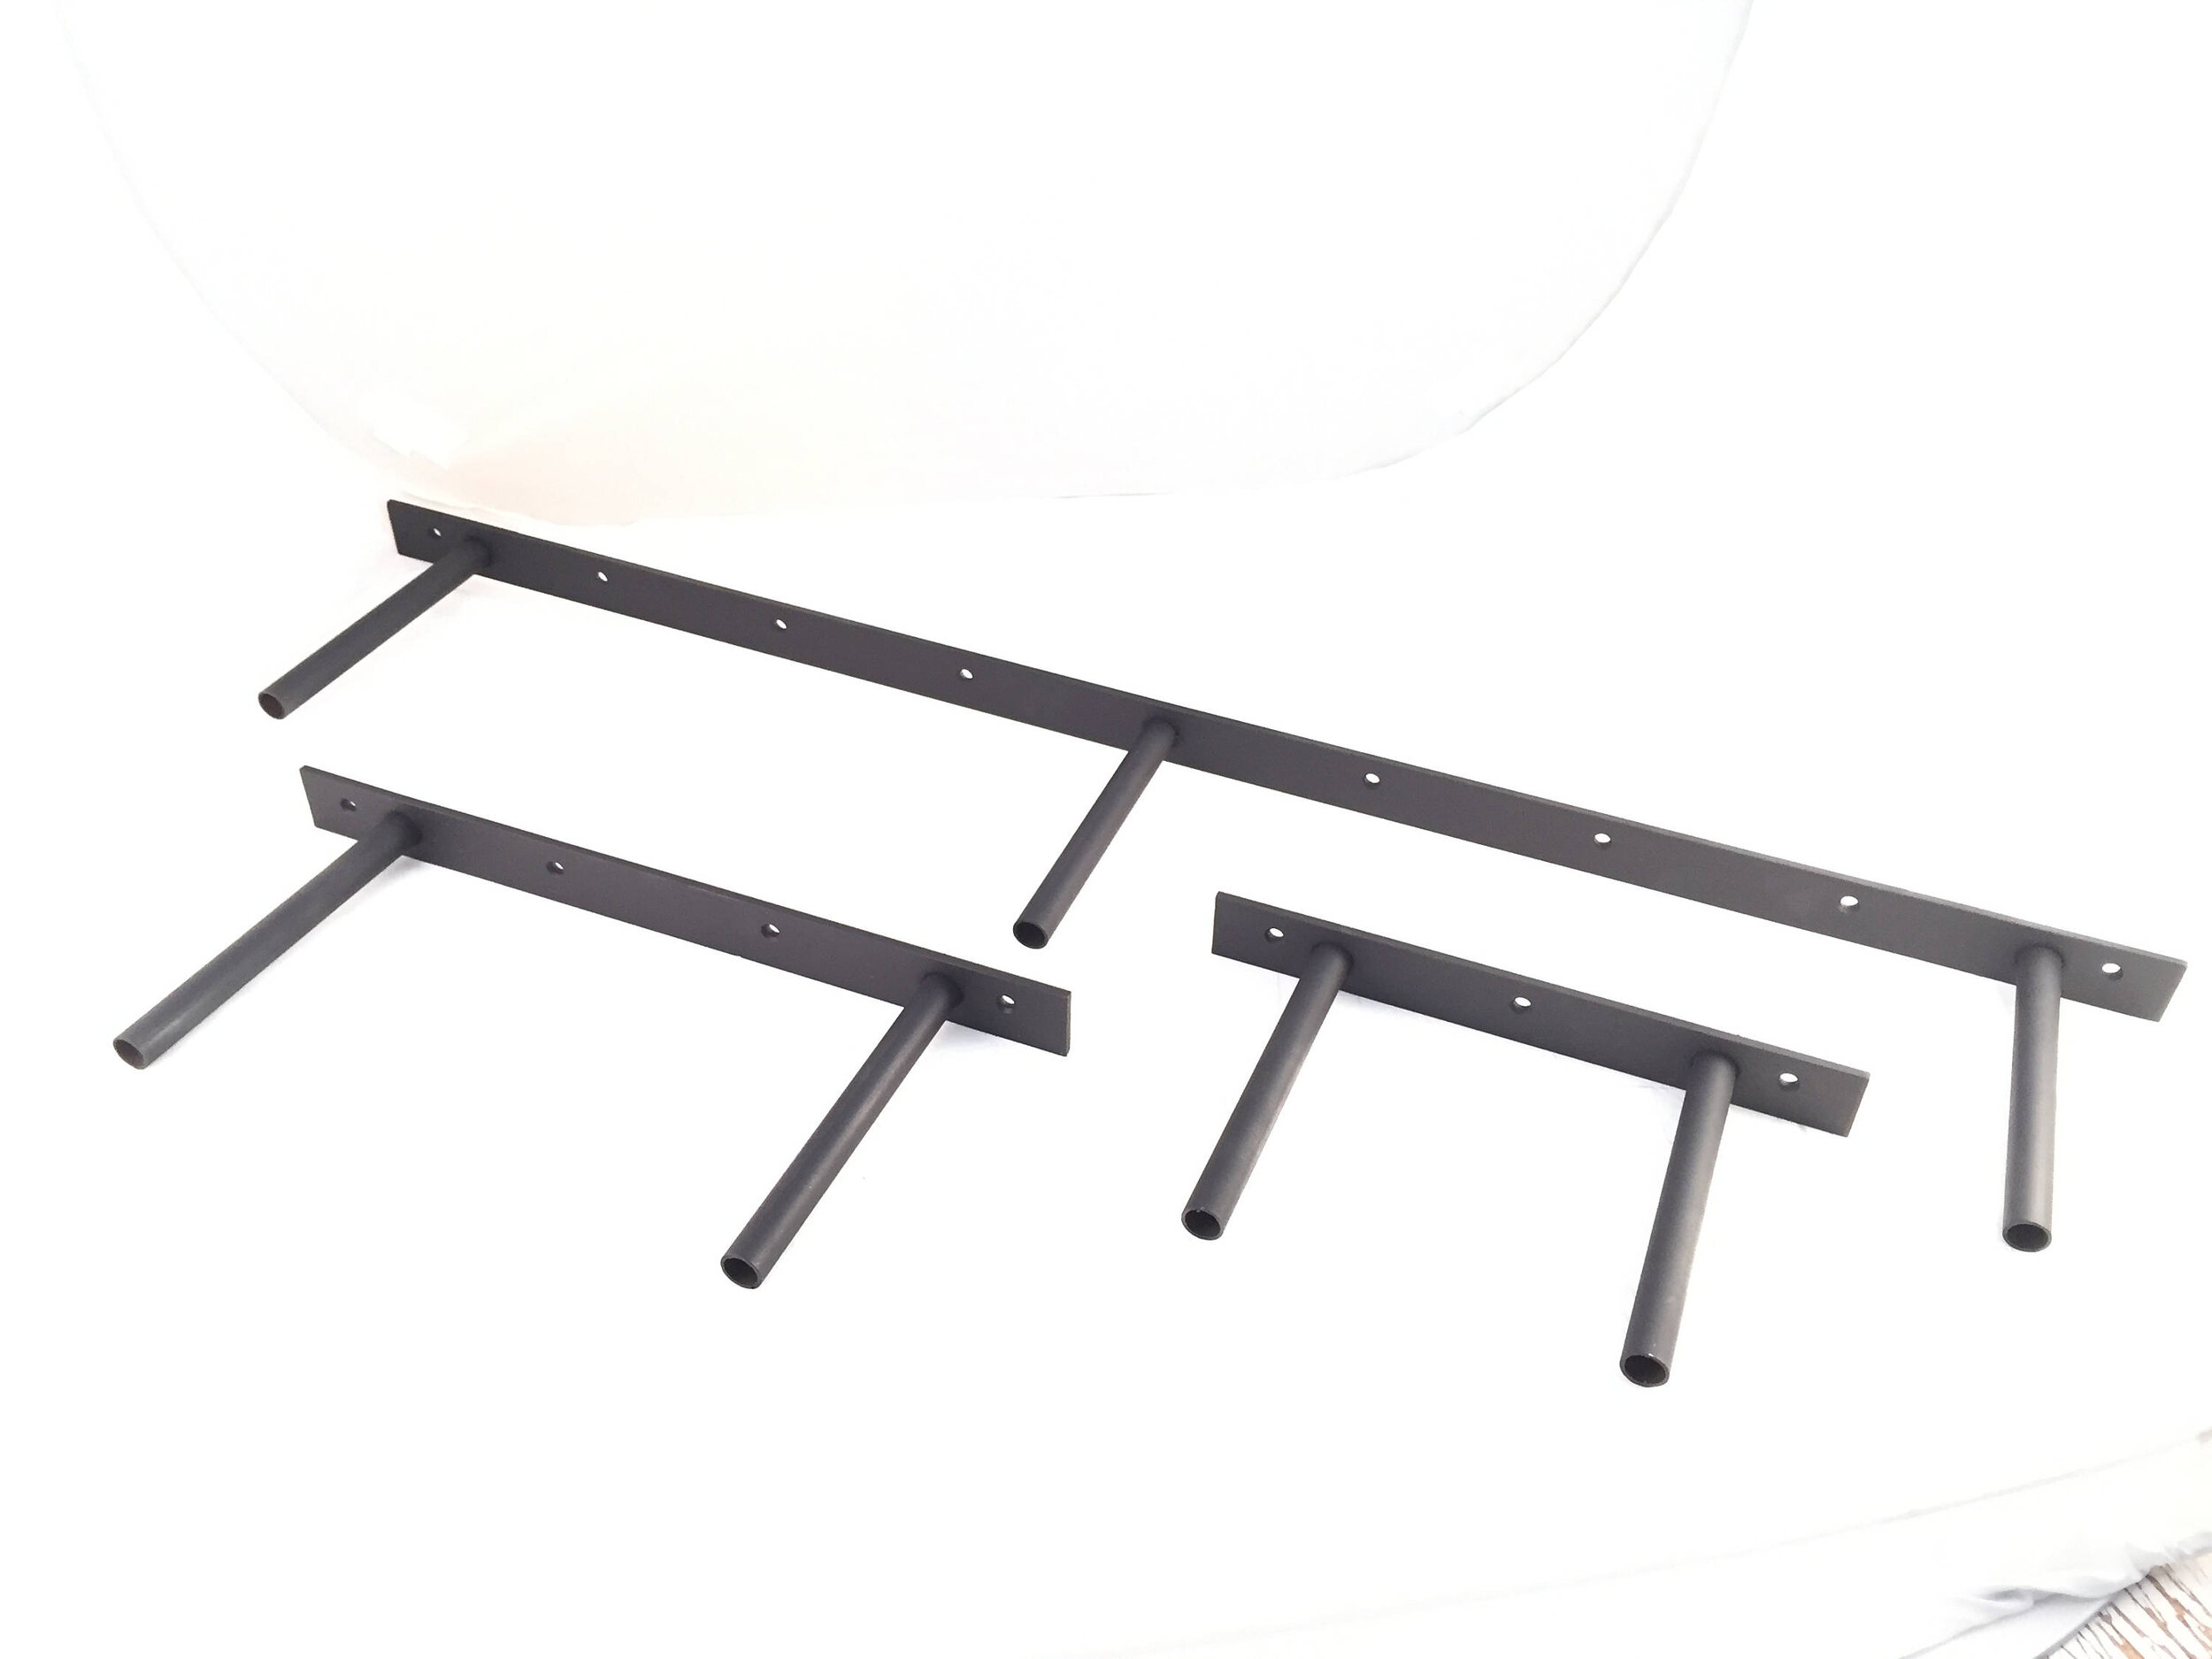 4 inch spaced floating shelf brackets